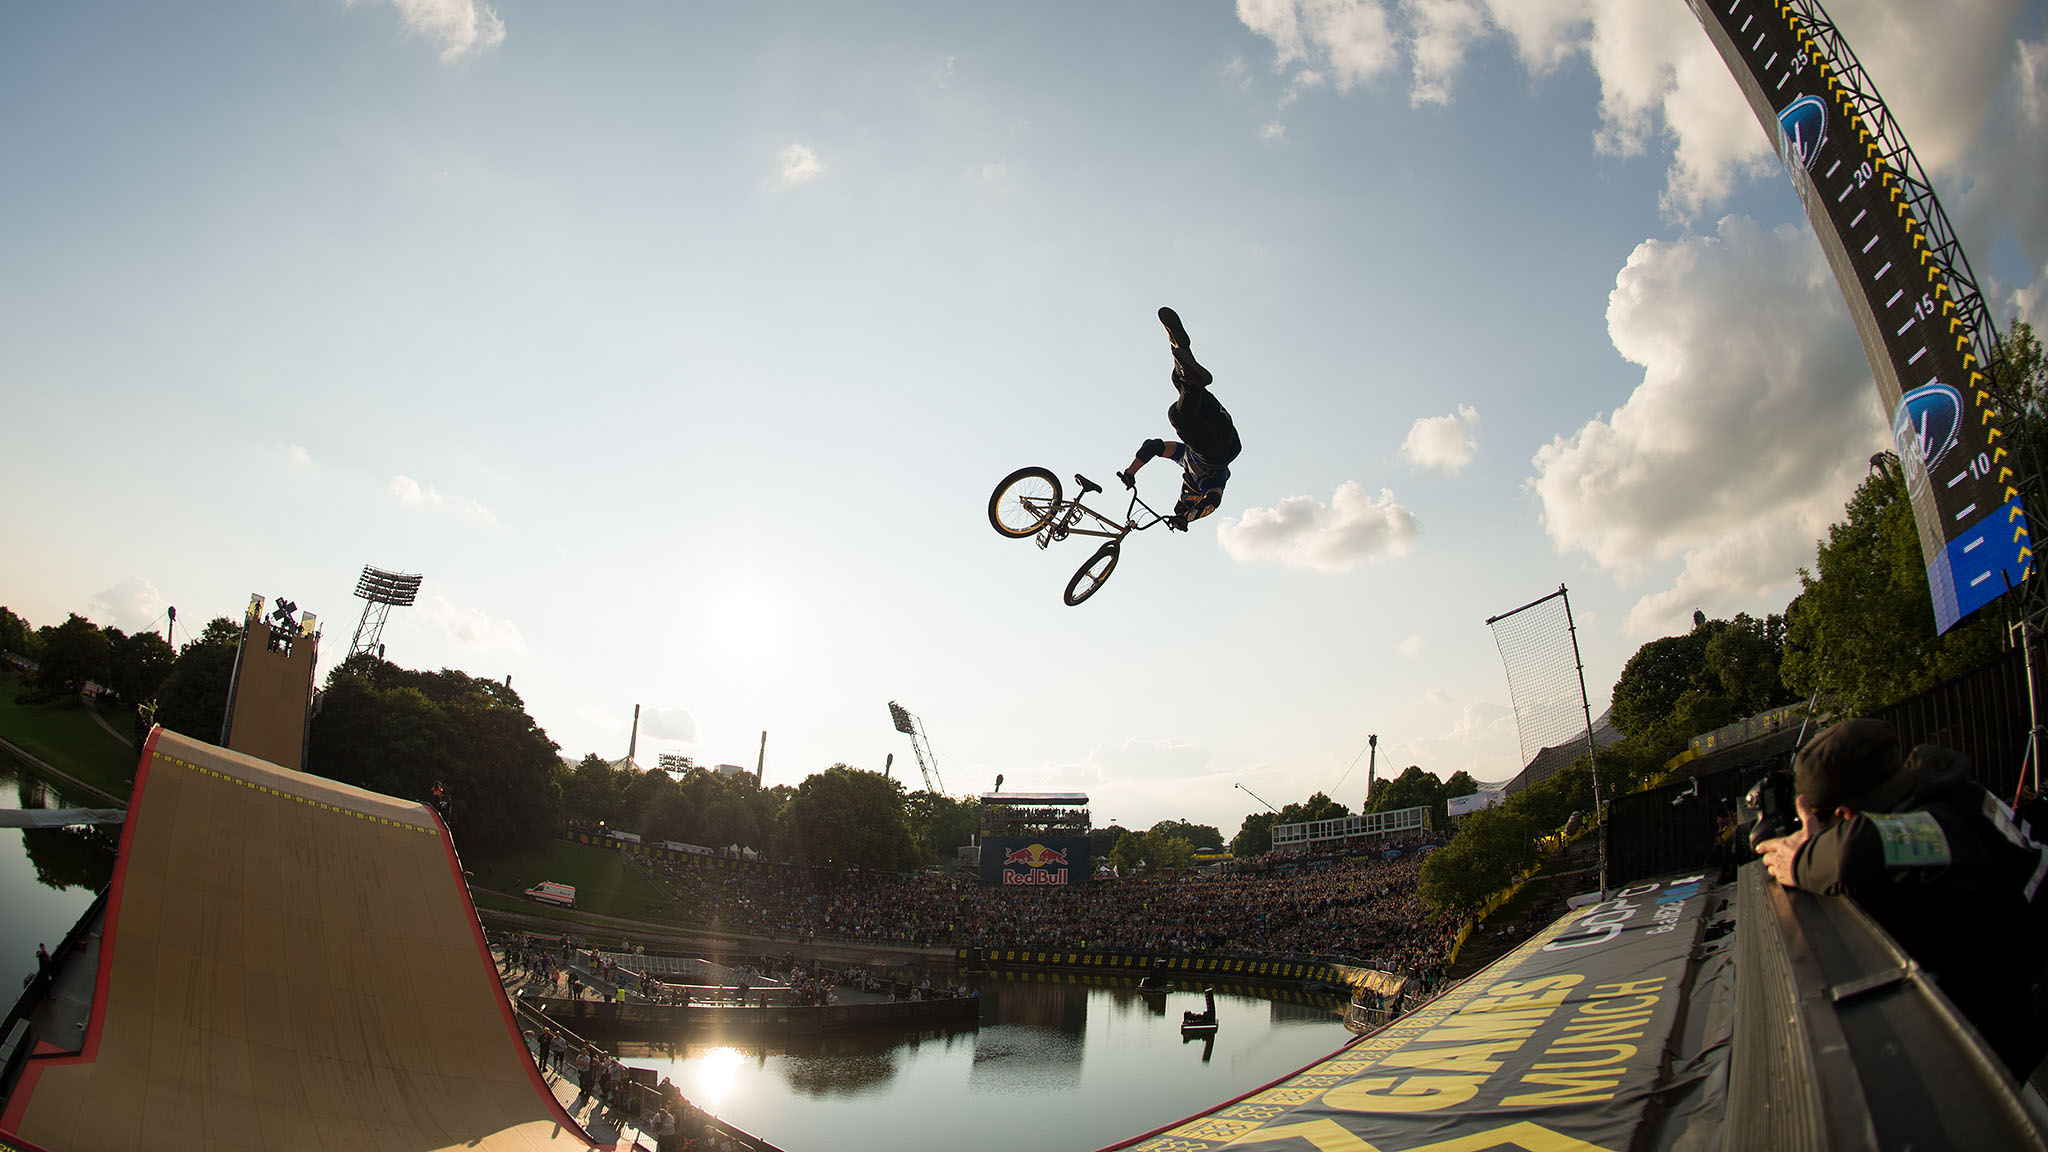 In Munich, Chad Kagy earned his third X Games gold medal in BMX Big Air.